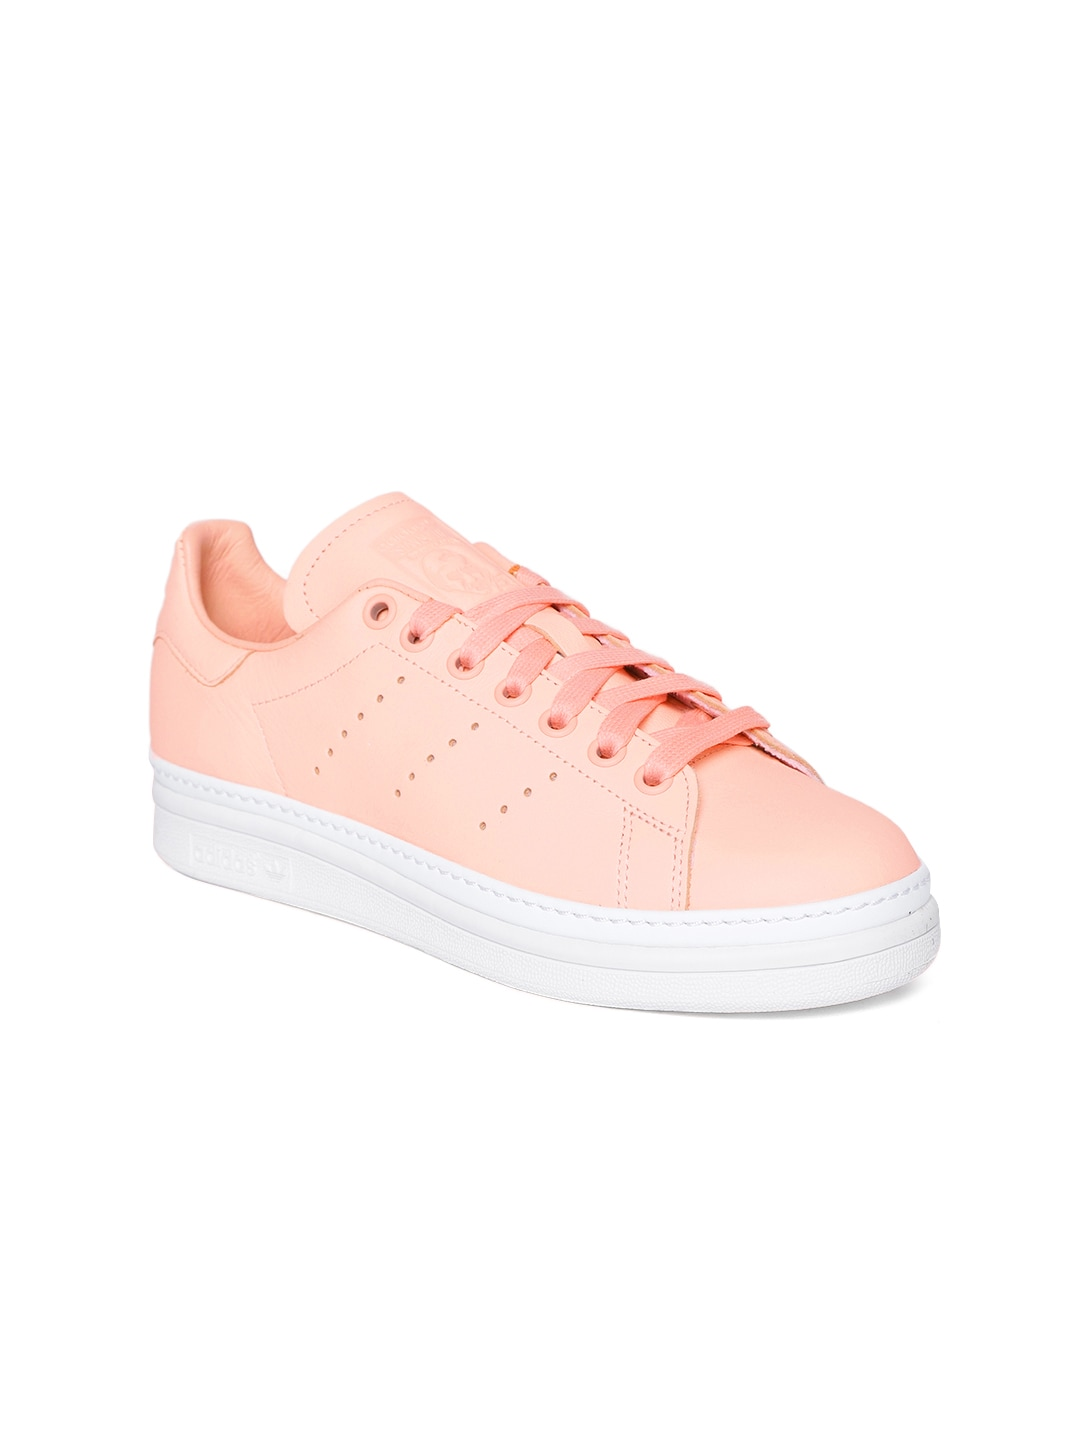 b13c02b97e089c Adidas Stan Smith Sneakers - Buy Stan Smith Shoes and Sneakers Online in  India - Myntra